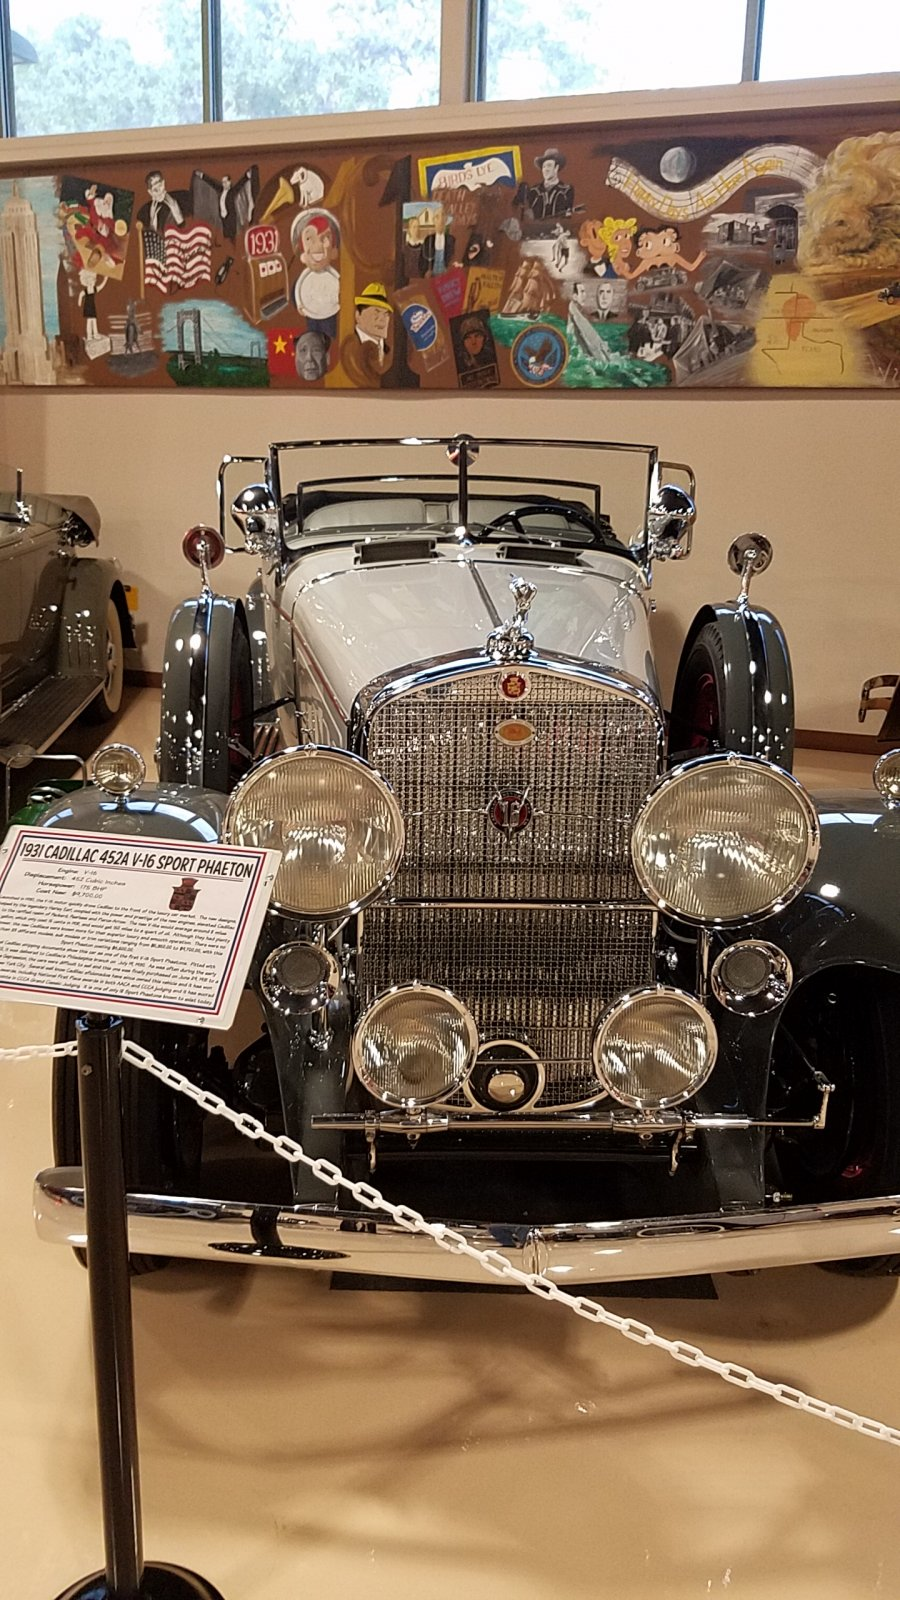 Click image for larger version  Name:31Cadillac.jpg Views:39 Size:321.6 KB ID:299392